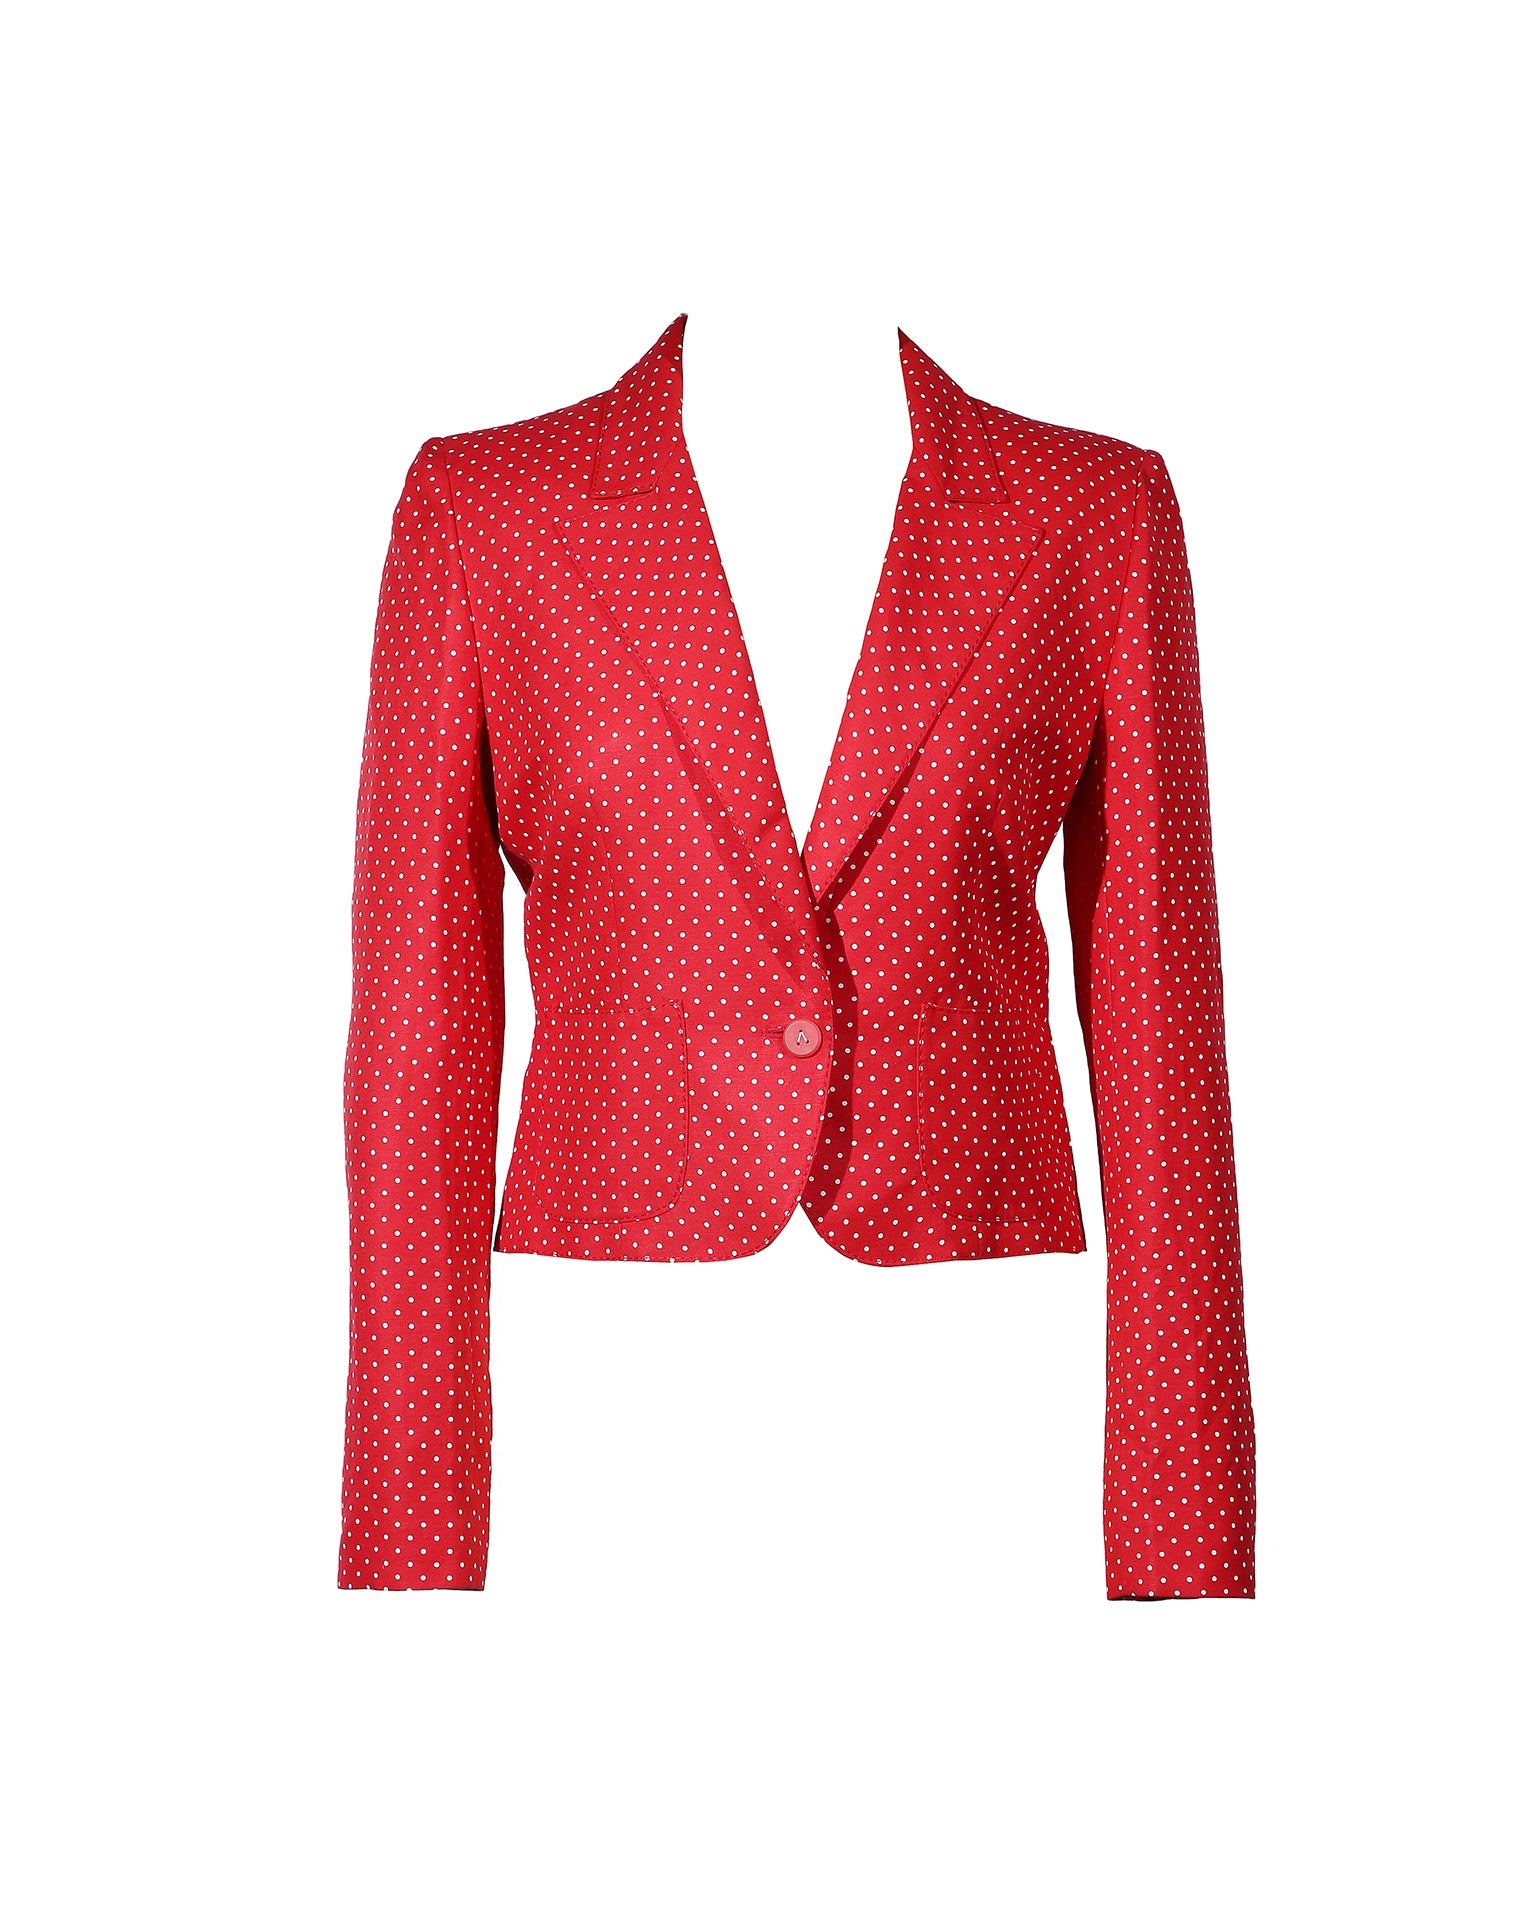 Valentino Red and White Polka dots Suit: Jacket and Trousers Size 8 (US)